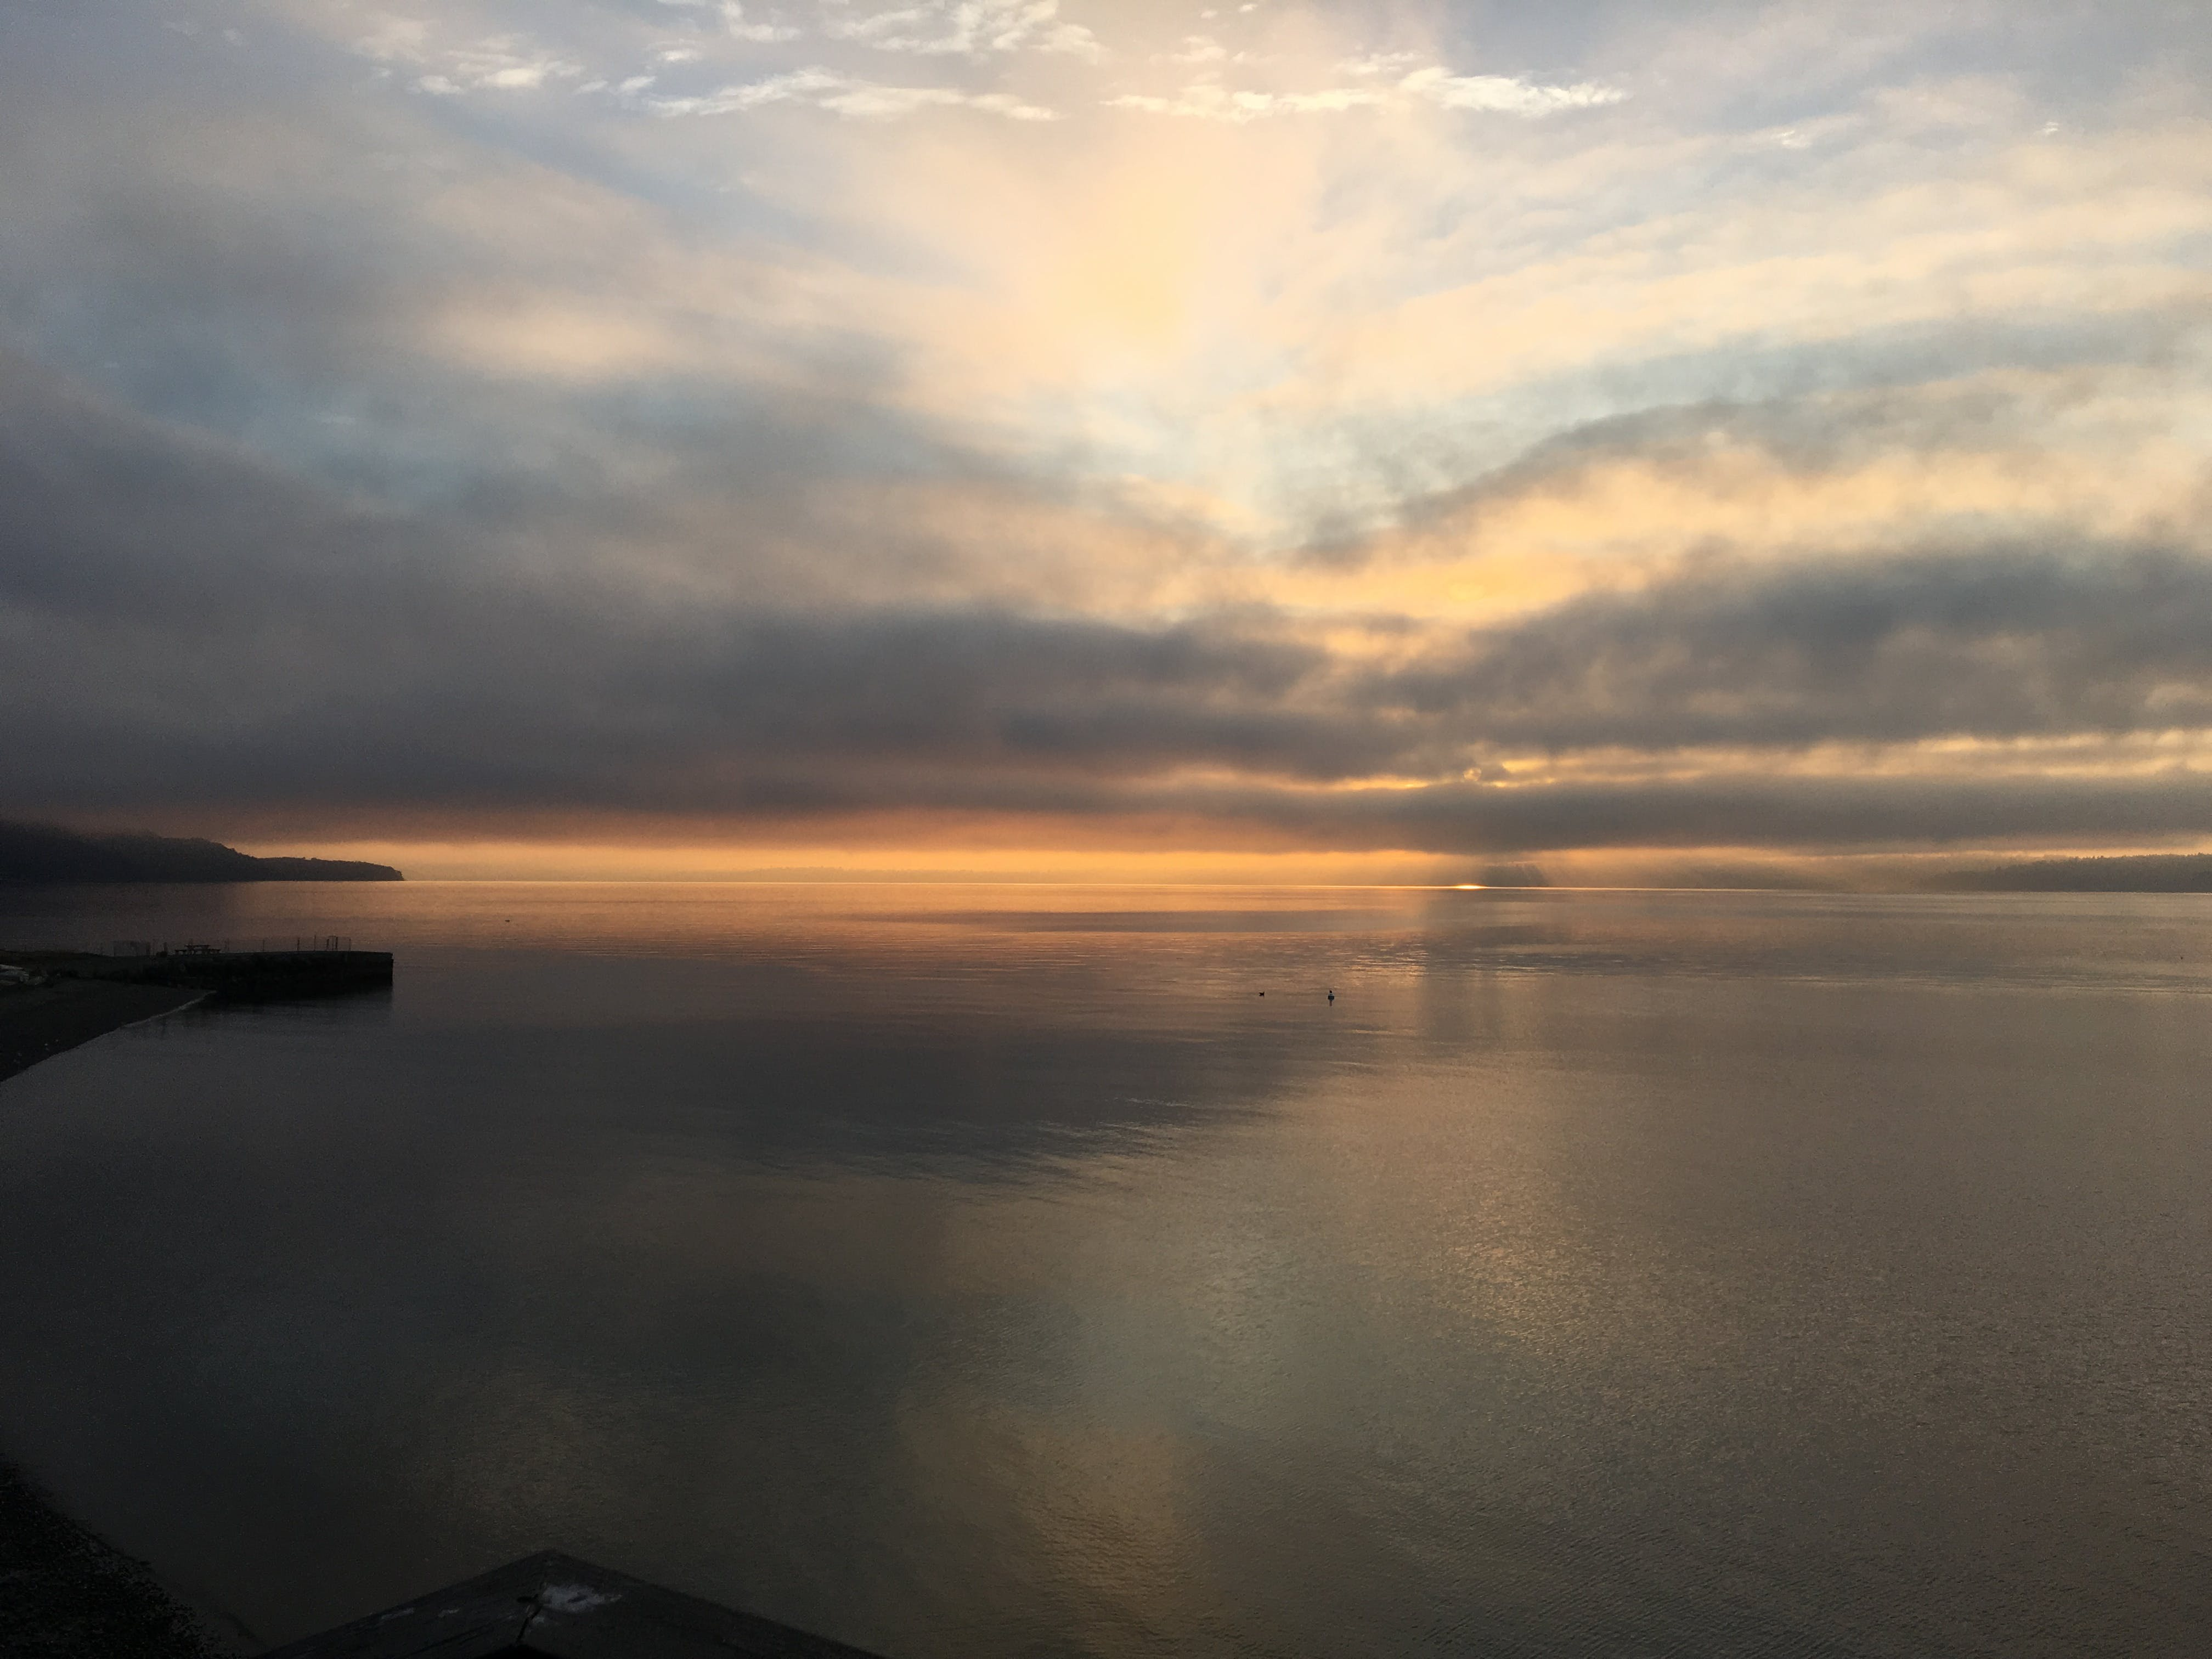 Free stock photo of clouds, ocean, overcast, puget sound